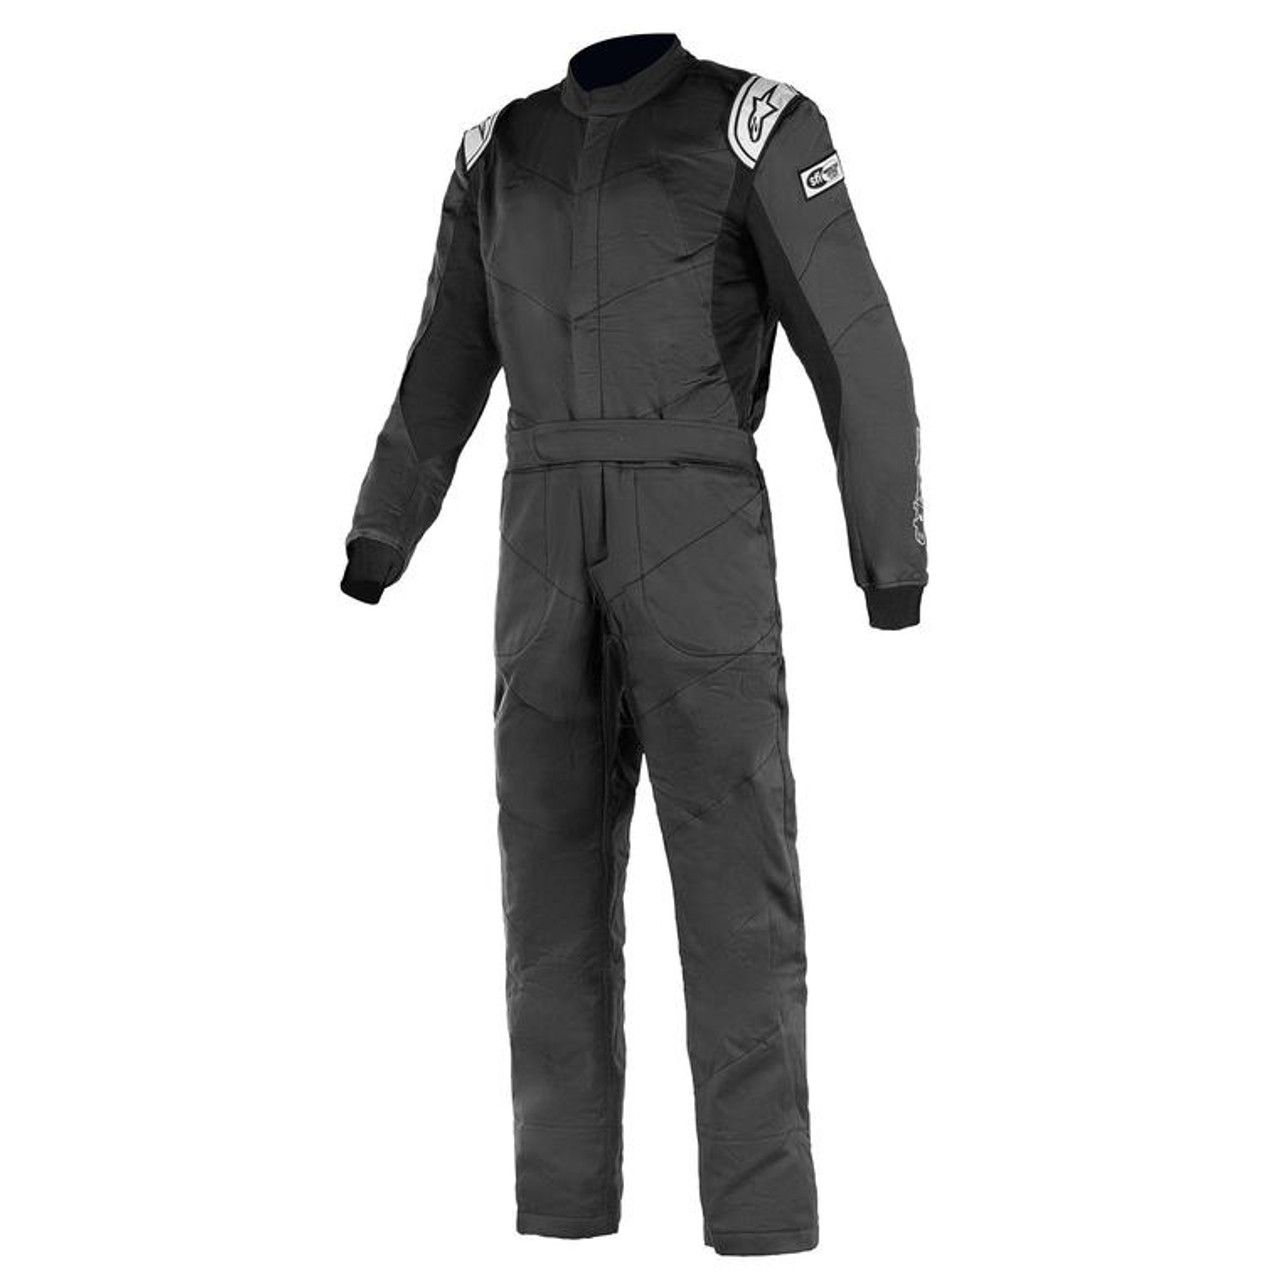 ALPINESTARS Knoxville V2 Driving Suit, 1 Piece, SFI 3.2A/5, Boot-Cut, Triple Layer Black